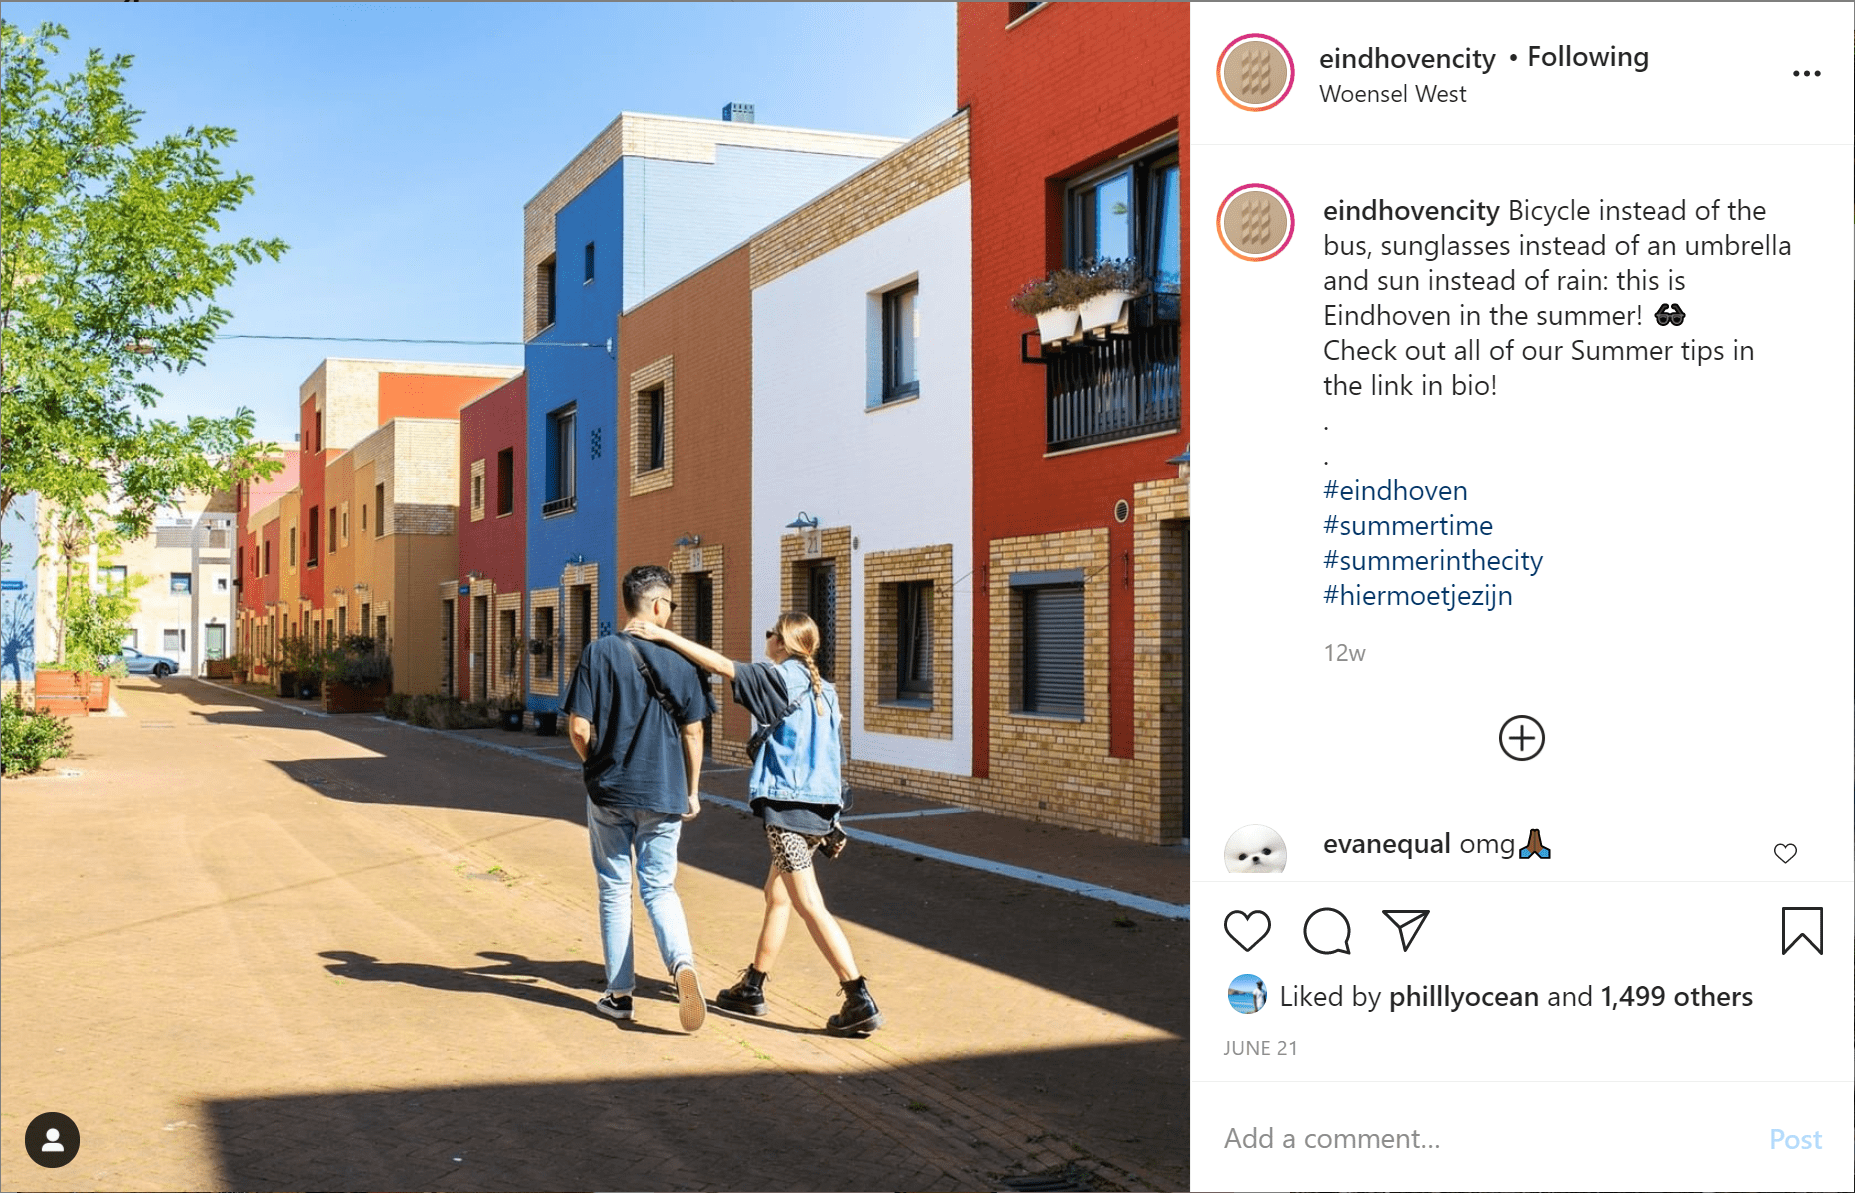 a man and woman wearing blue denim walk in front of colourful houses in Eindhoven